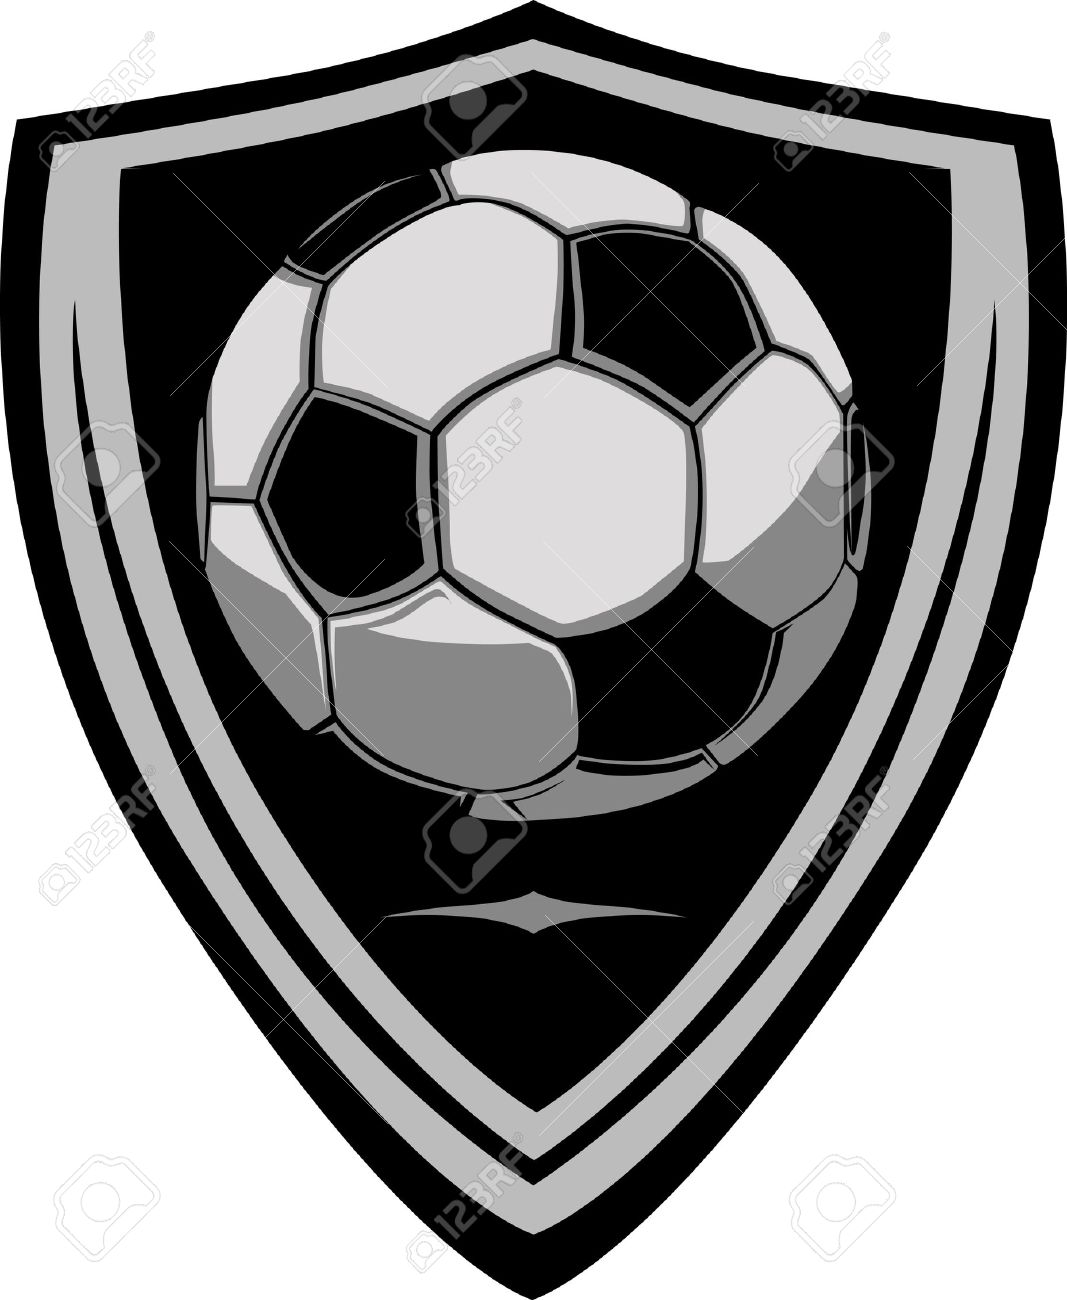 soccer template with shield royalty free cliparts vectors and